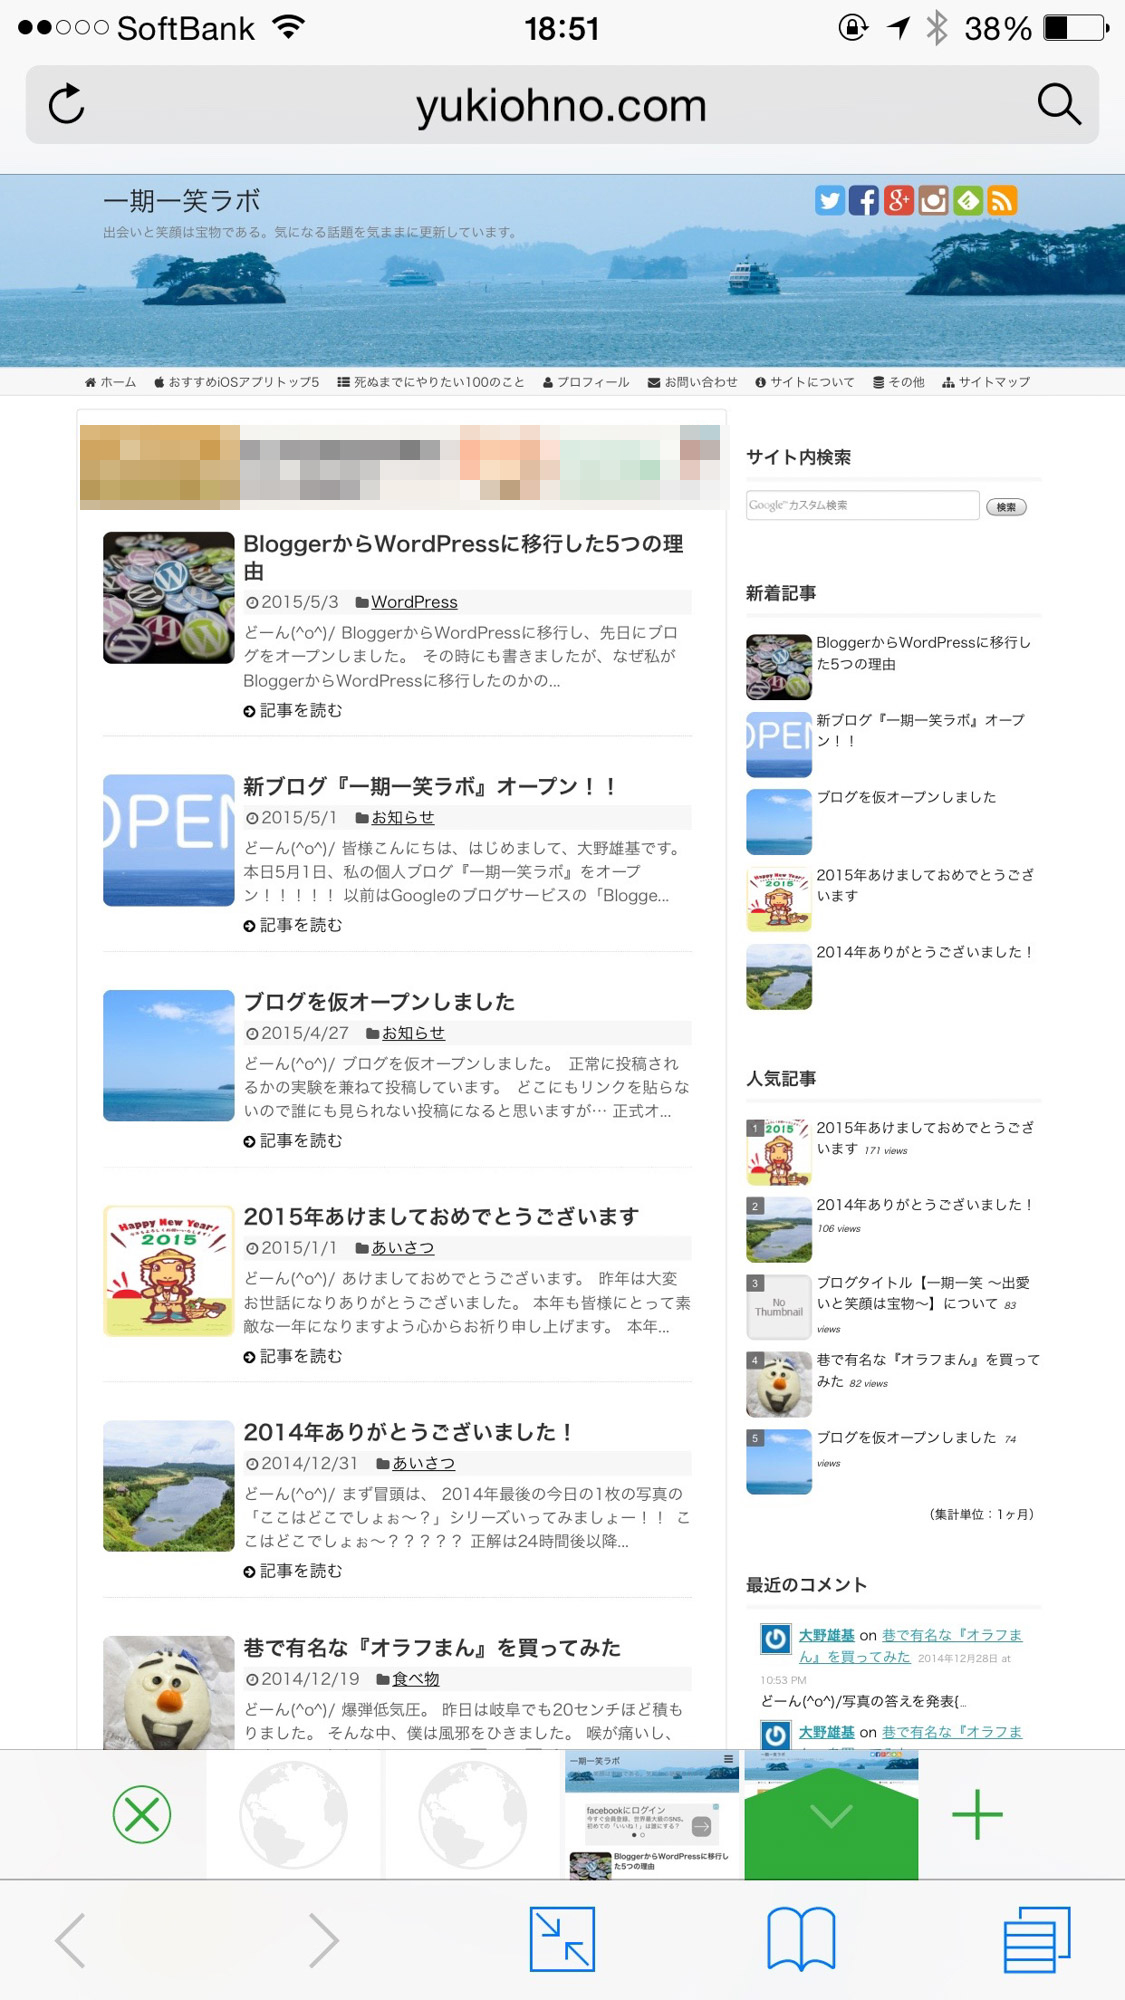 browser-wp-4300